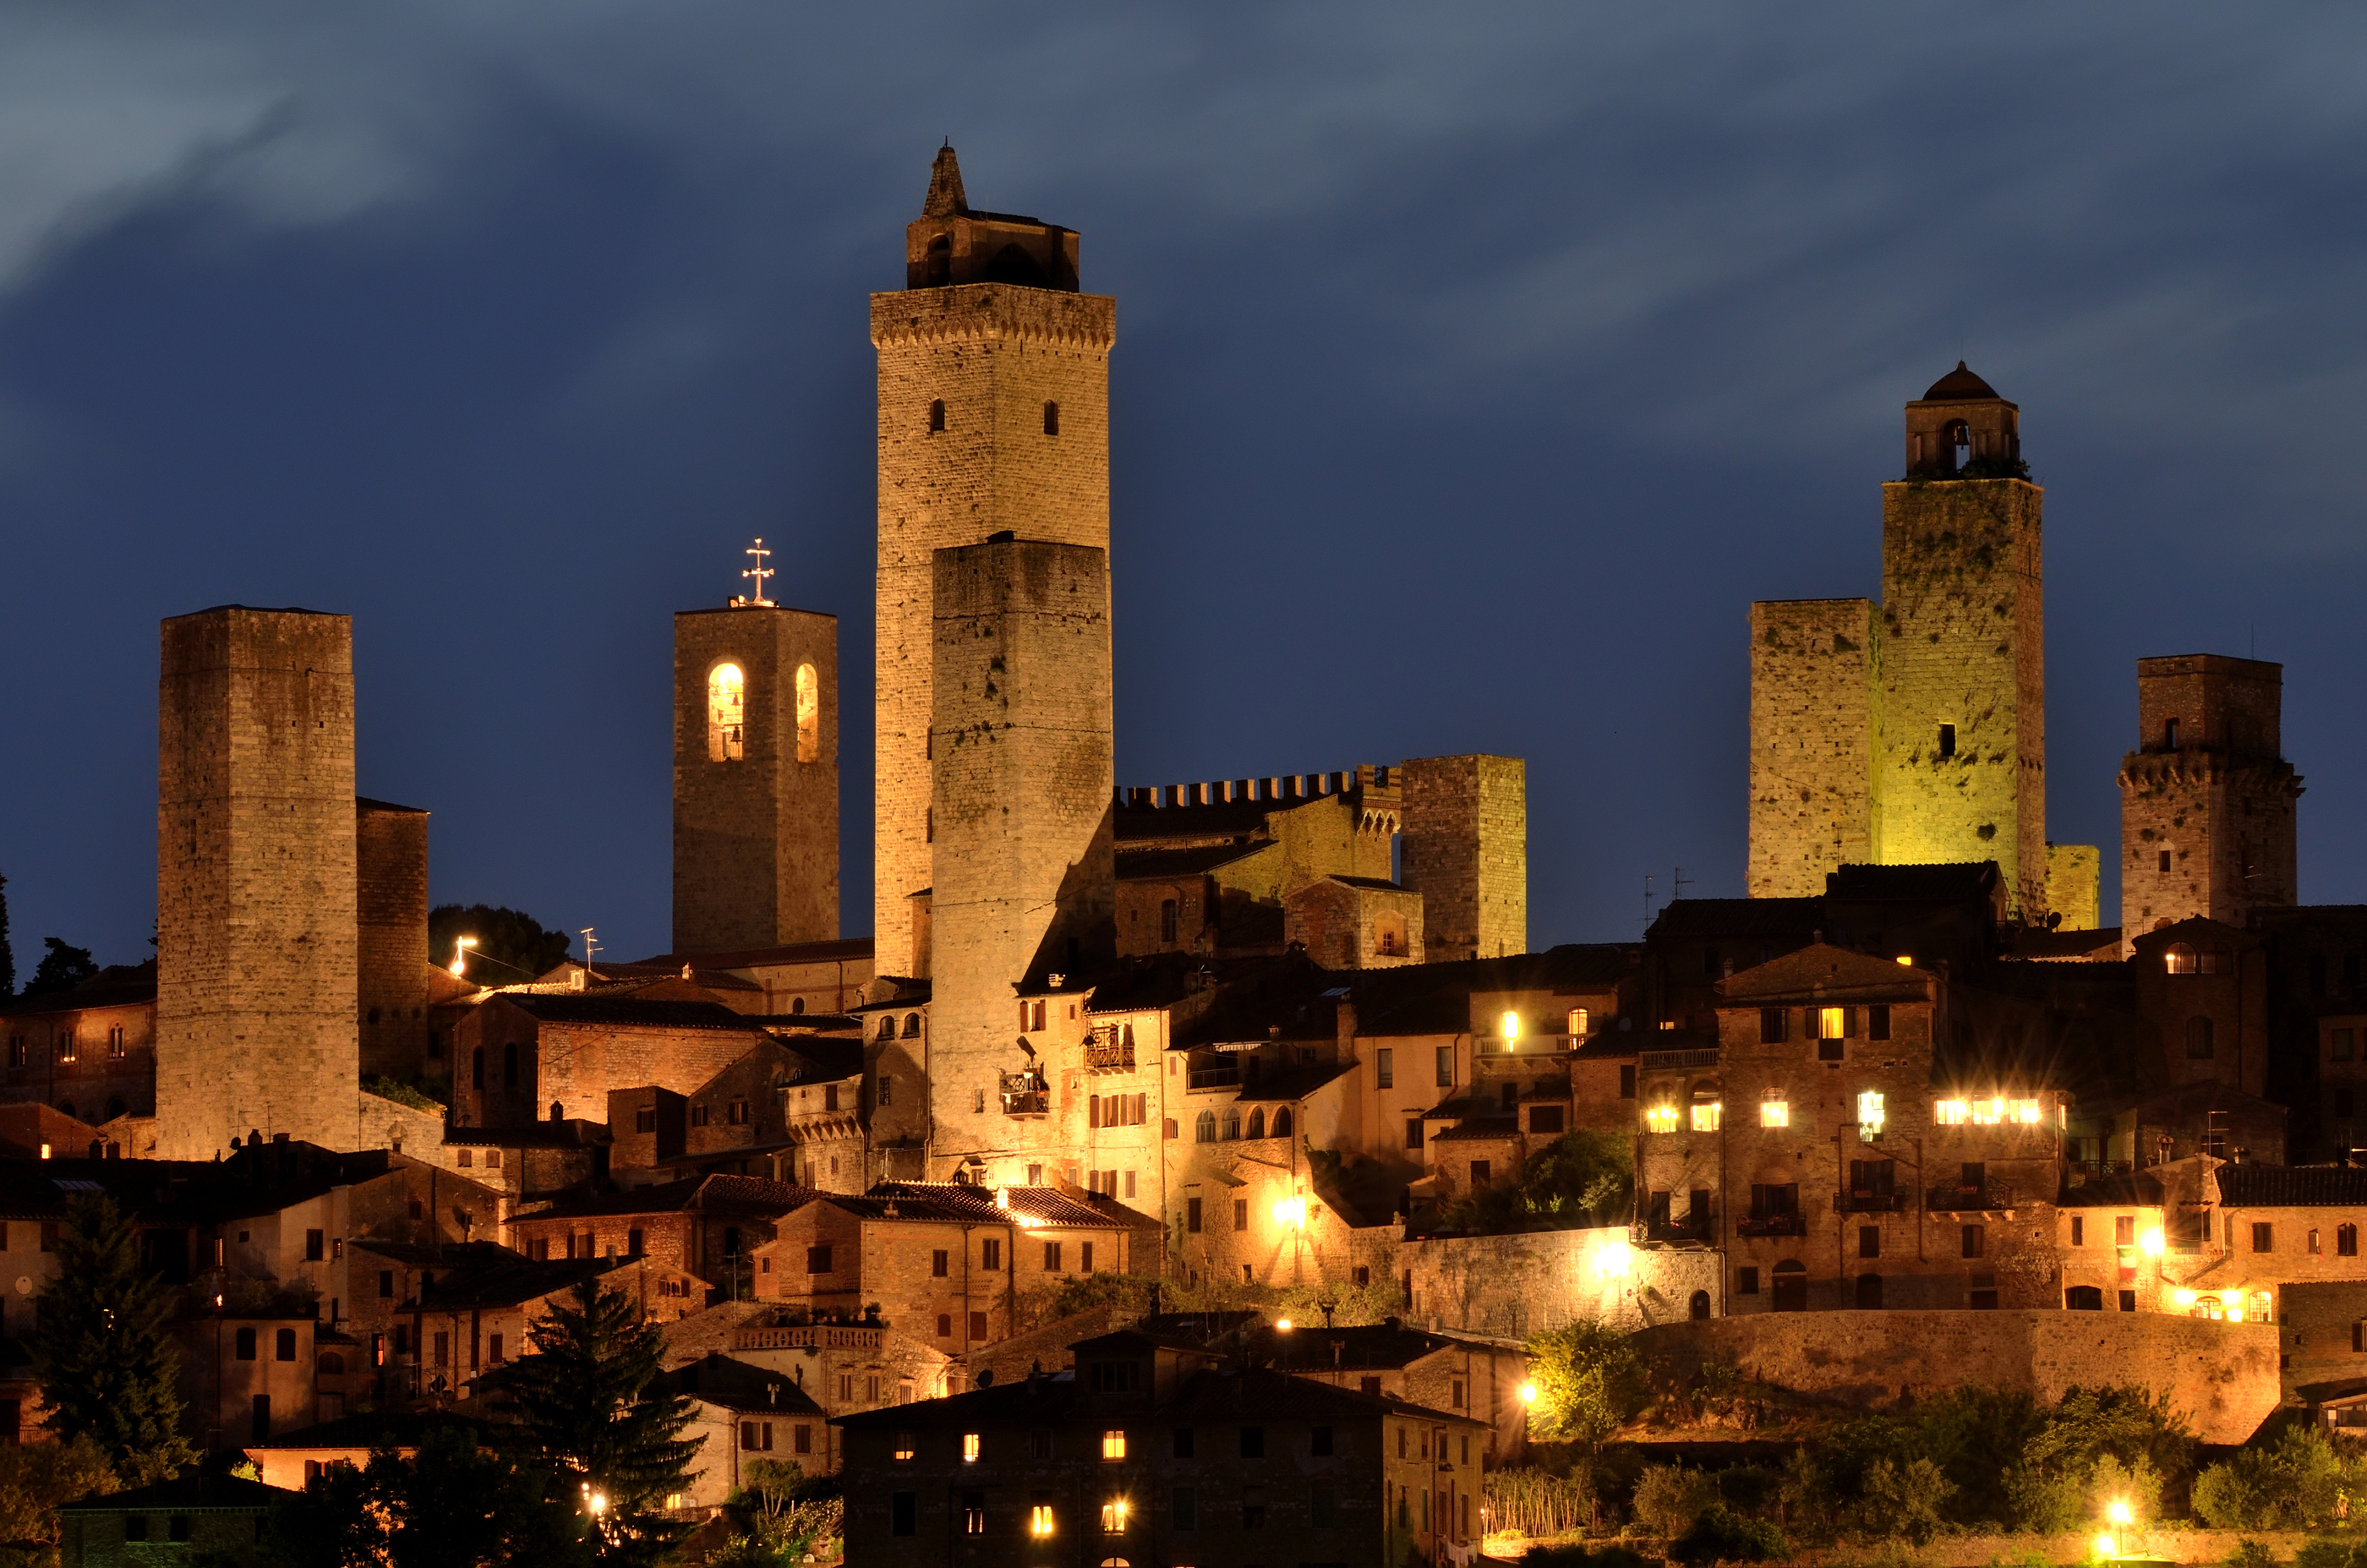 Tuscan Town has a Towering Influence